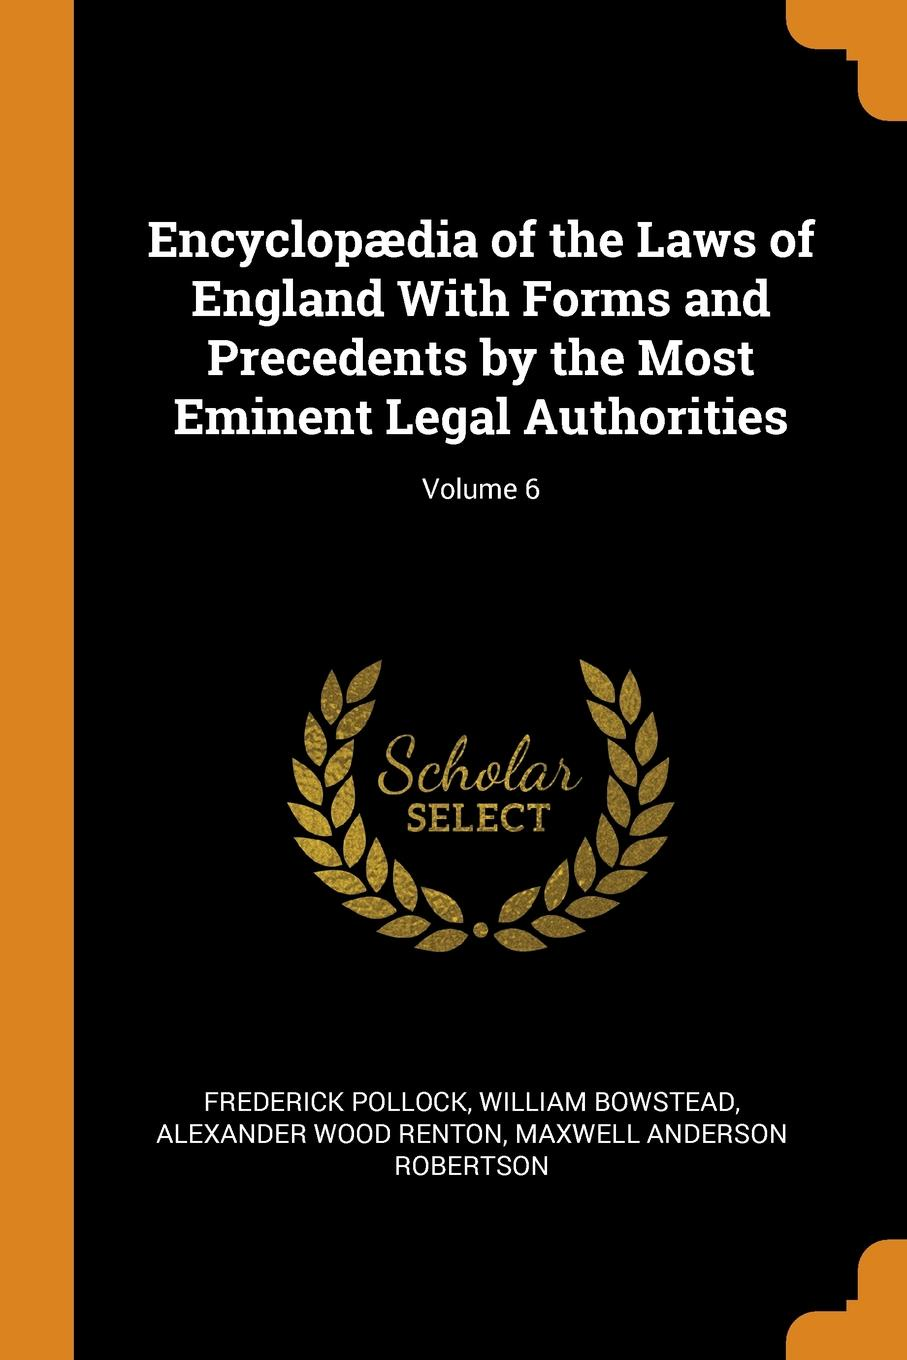 Encyclopaedia of the Laws of England With Forms and Precedents by the Most Eminent Legal Authorities; Volume 6. Frederick Pollock, William Bowstead, Alexander Wood Renton